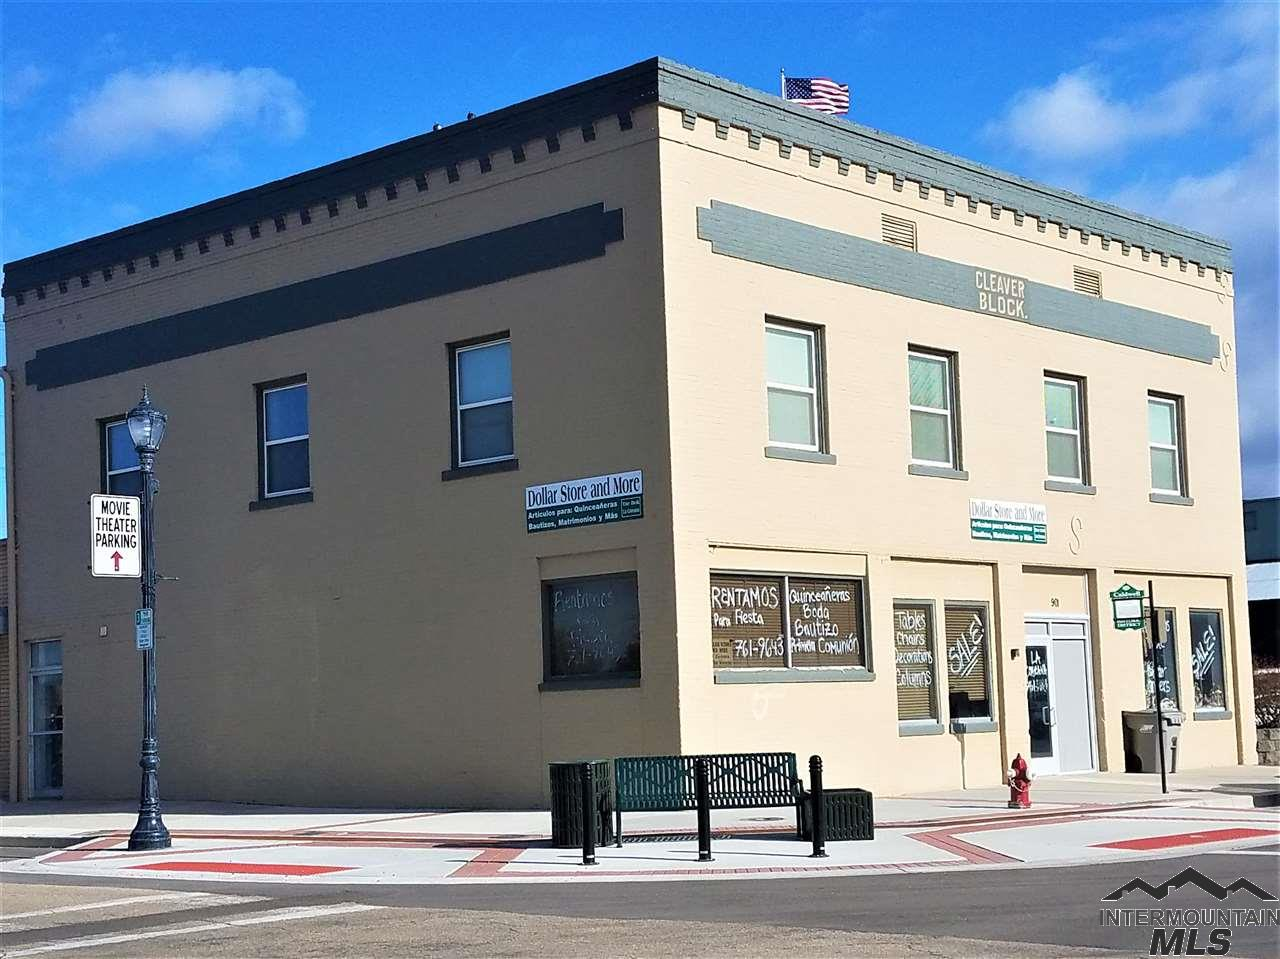 7500 Sq.Ft. 2-Story Brick Historic Property in the Heart of Caldwell's Downtown. Full Basement Storage. Great Access to I-84 and Canyon County Seat of Government. Great for Retail, Office, Law Office, Restaurant, Coffee Shop, Event Center. ADA access on main floor with Restrooms, Fully Remodeled 2nd Floor. Great Parking, next to the New Real Theater Complex and Caldwell US Post Office.